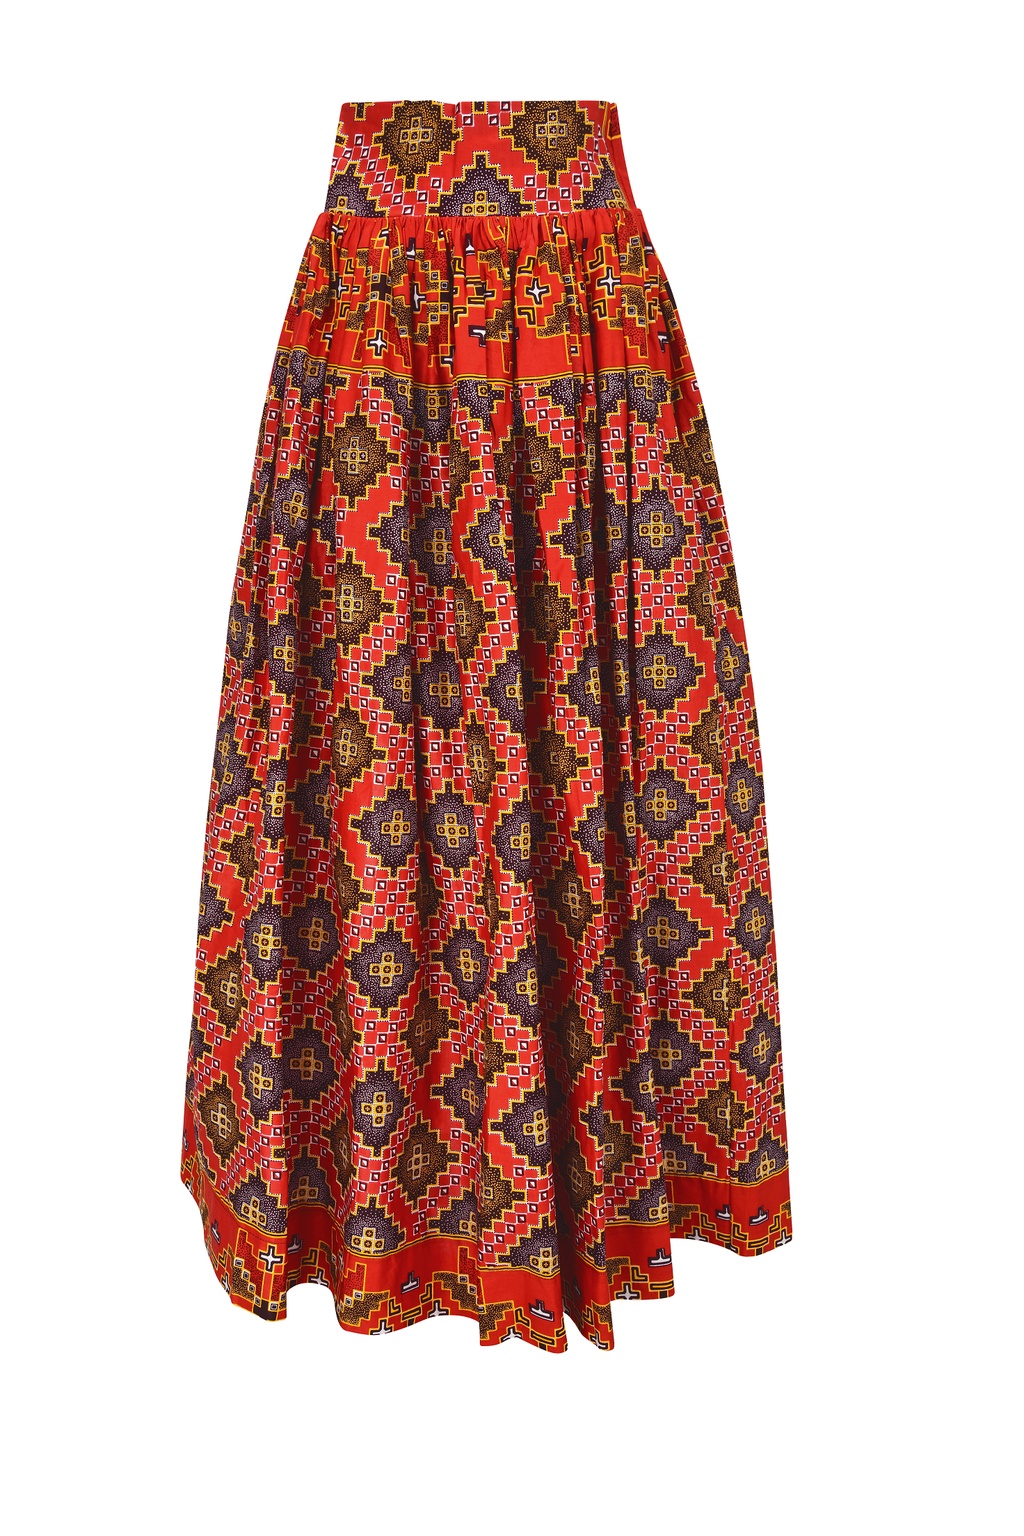 African Kobou maxi skirt for women.